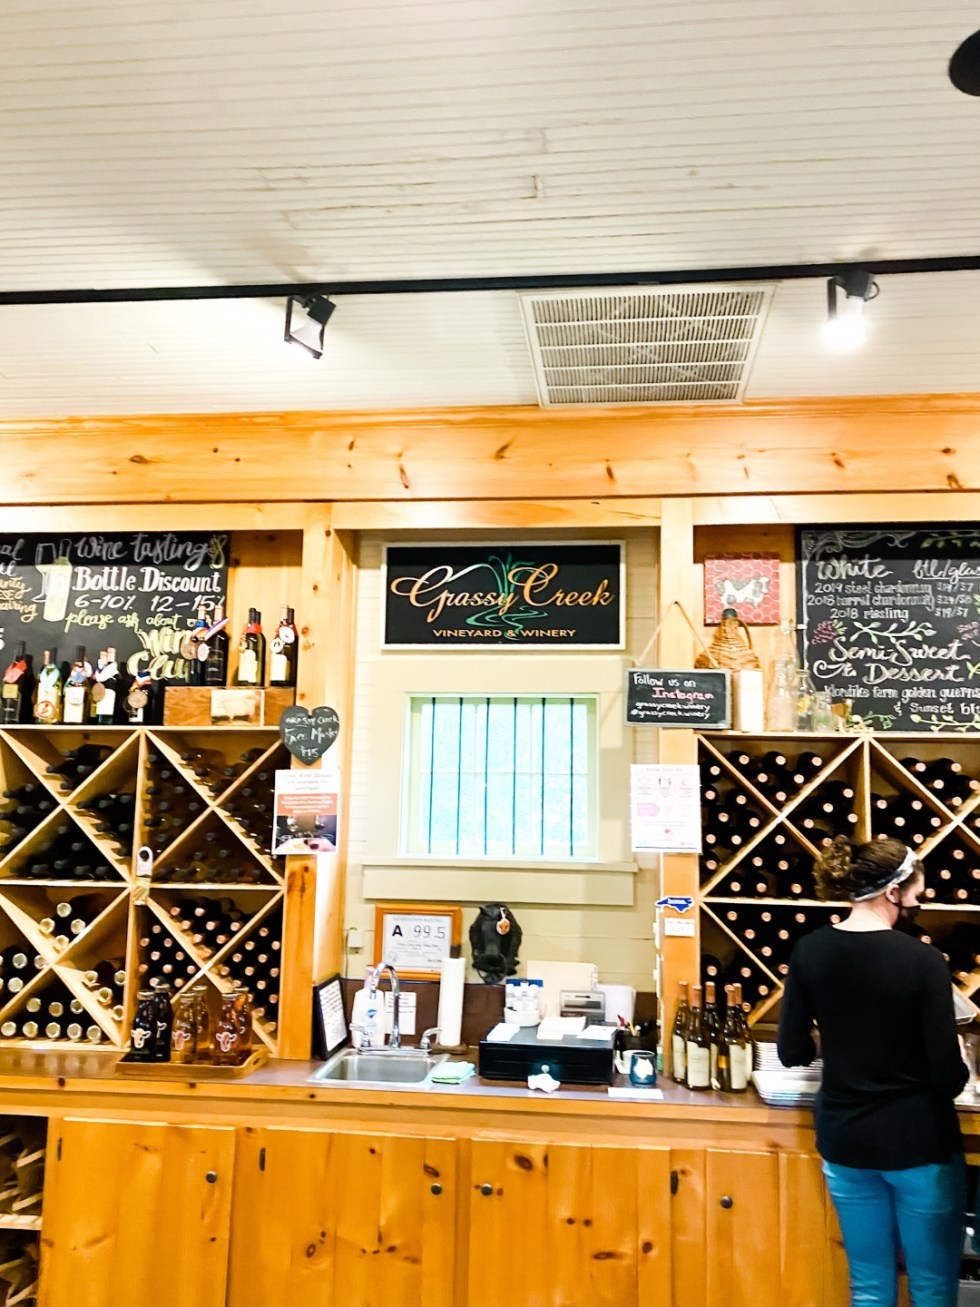 Western NC Wineries: 6 Wineries to Visit During your Next Girls' Weekend - I'm Fixin' To - @mbg0112 |Western NC Wineries by popular NC blog, I'm Fixin' To: image of wine displays at Grassy Creek vineyard and winery.